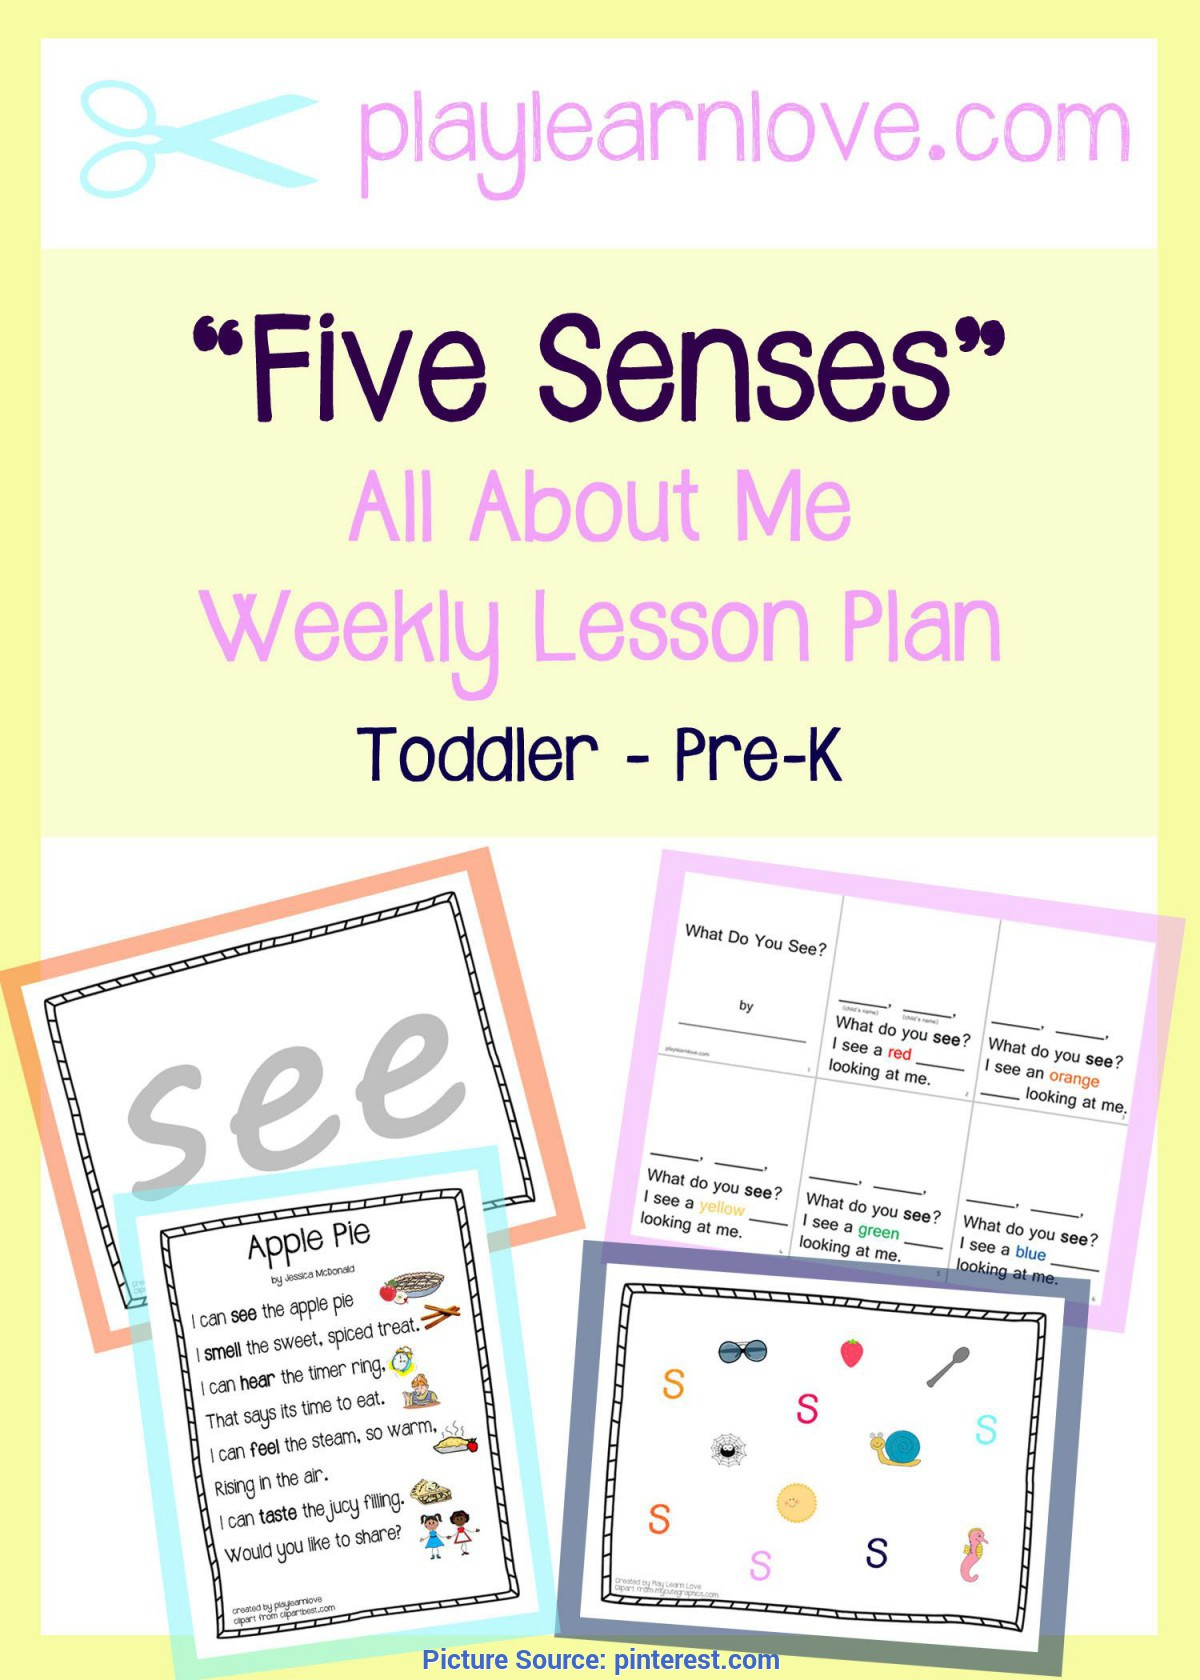 Special All About Me Lesson Plans For Infants Five Senses Lesson Plan - From Play Learn Love | Lesson Pla